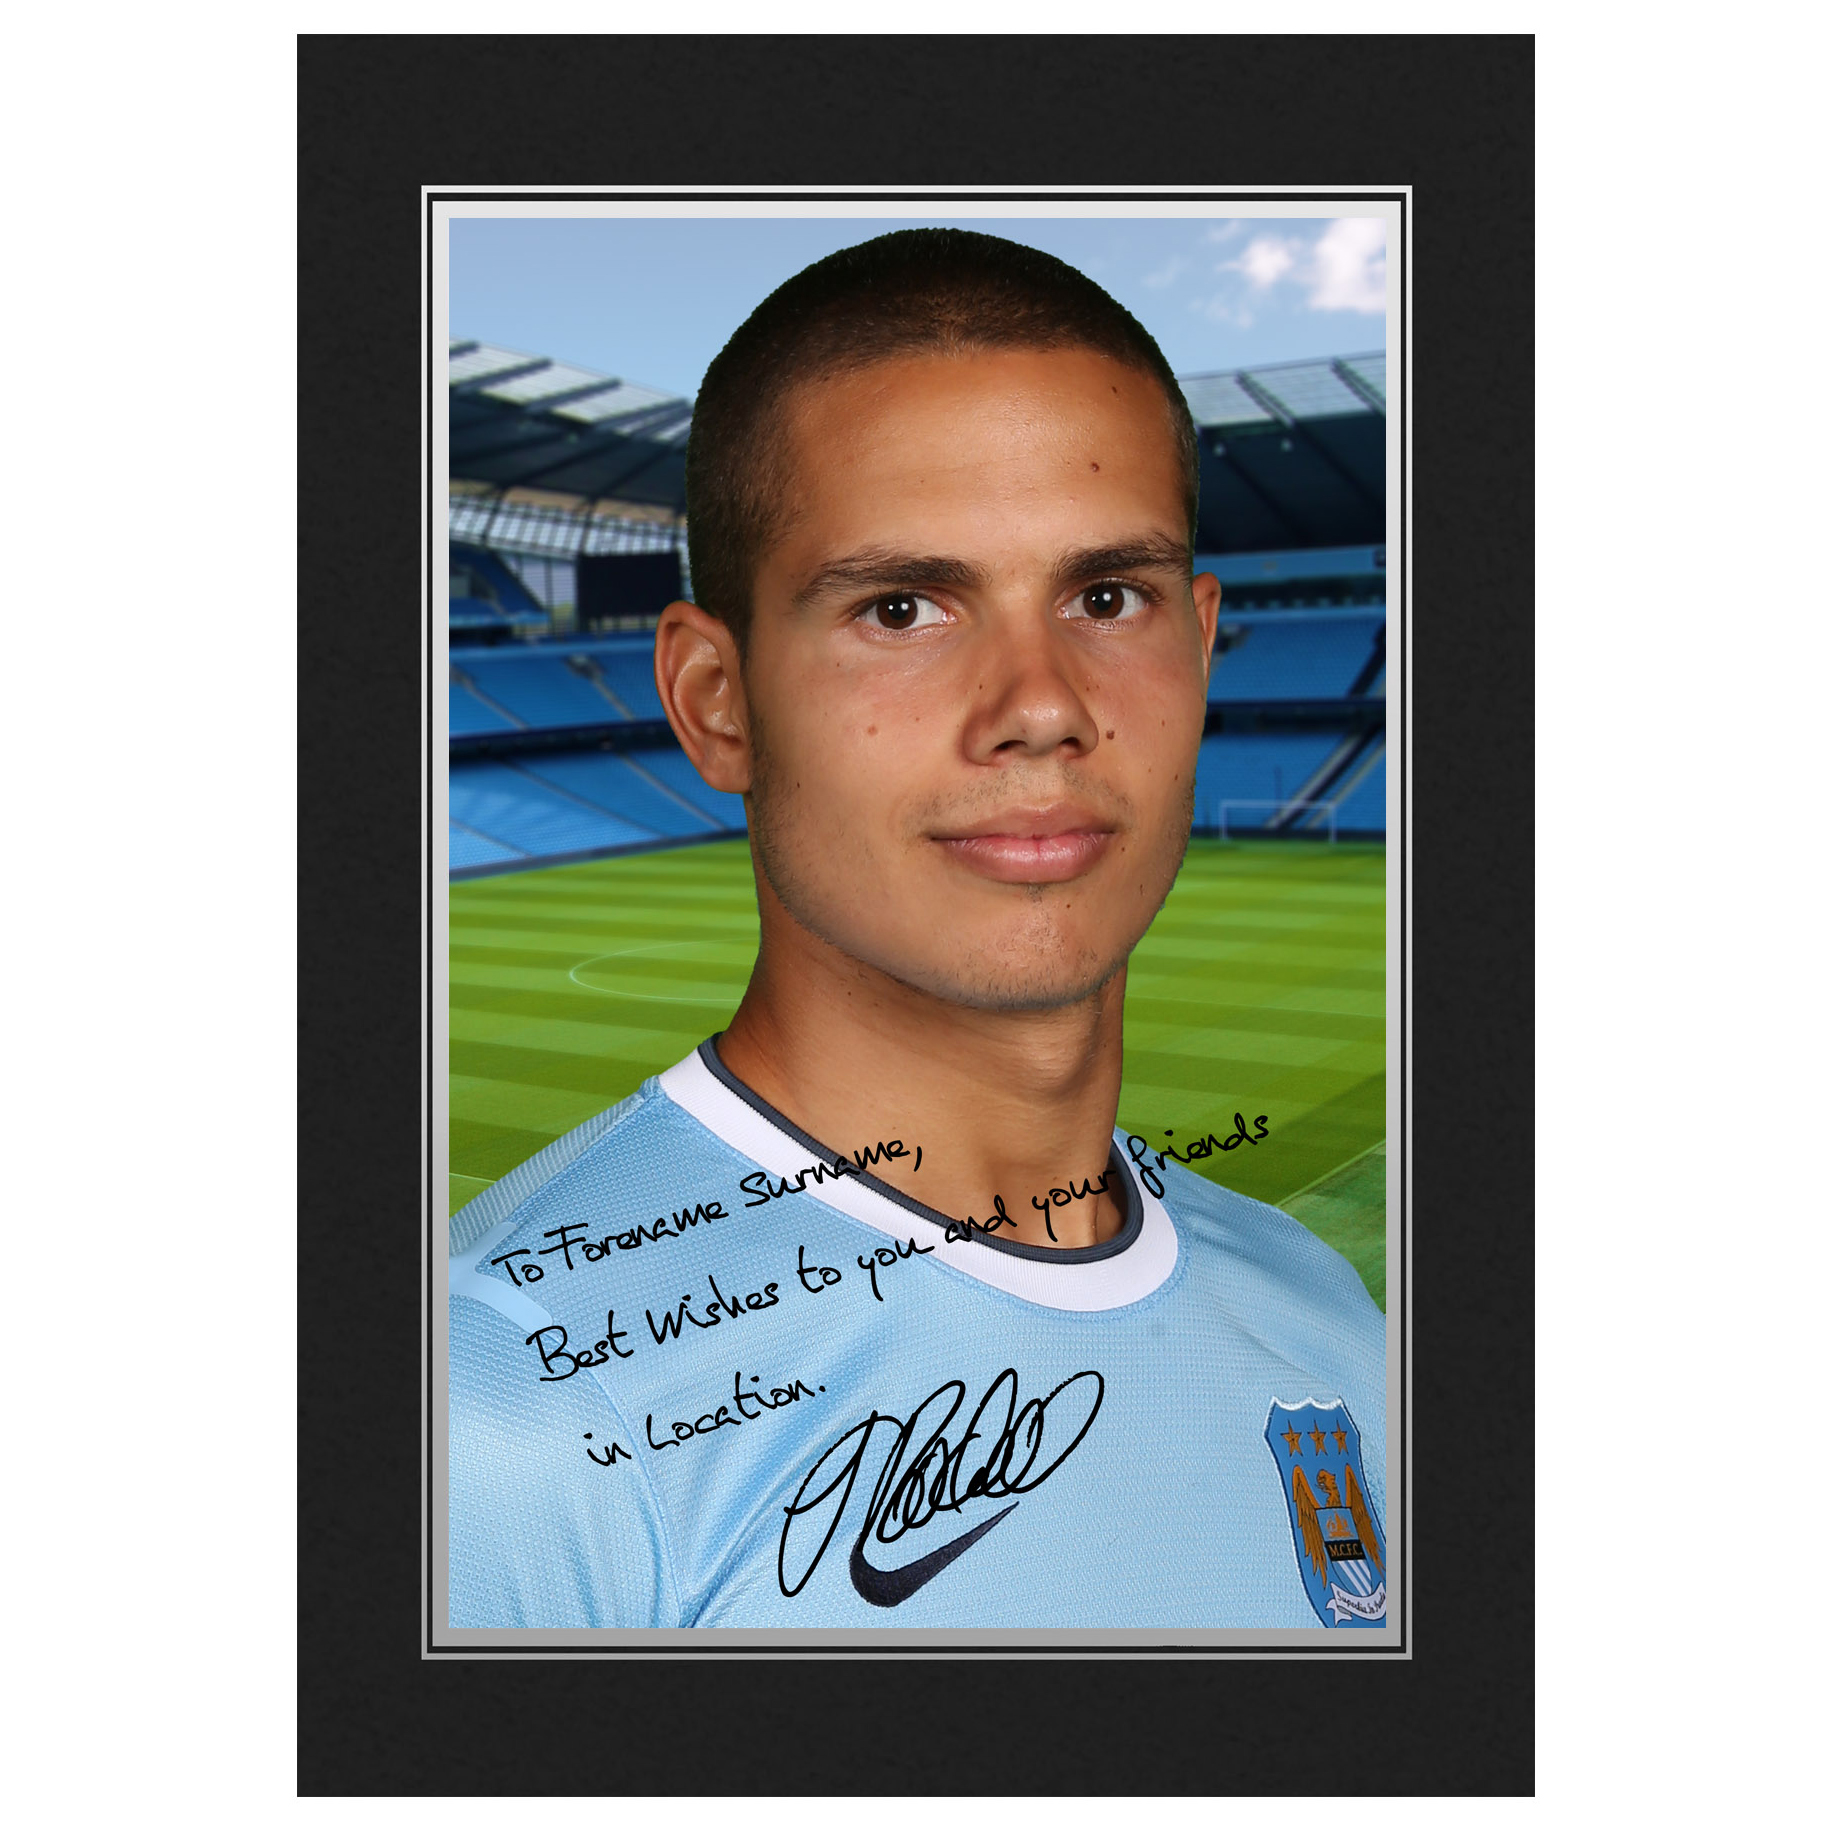 Manchester City Personalised Signature Photo in Presentation Folder - Jack Rodwell